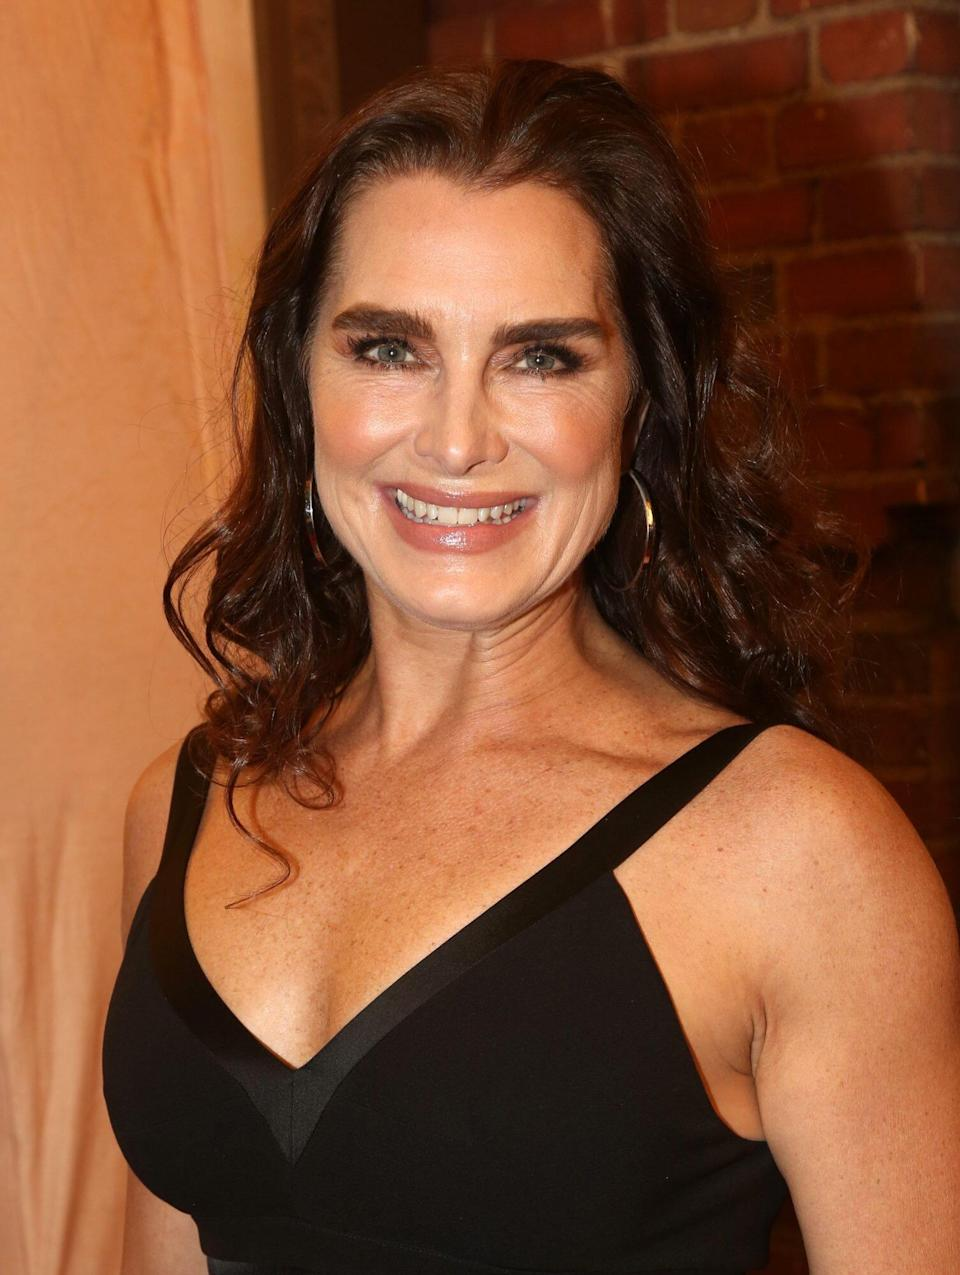 """Brooke Shields Just Addressed the """"Taboo Subject"""" of Menopause With the Skincare Find That's Changed Her Skin"""